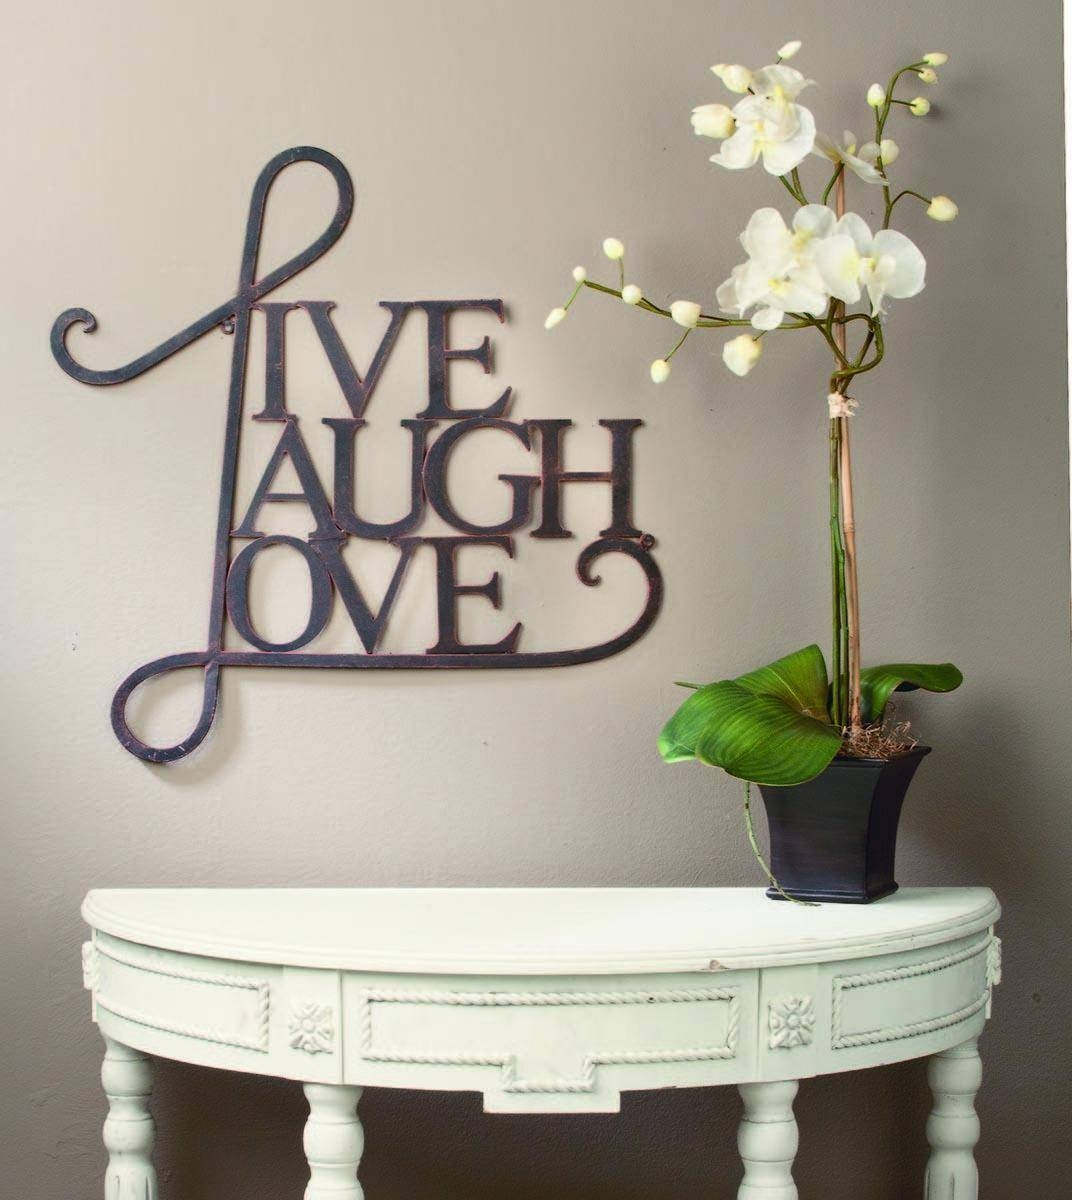 8 Best Images Of Love Wall Decor – Heart Shaped Frames, Live Laugh Intended For 2017 Live Love Laugh Metal Wall Art (View 2 of 25)